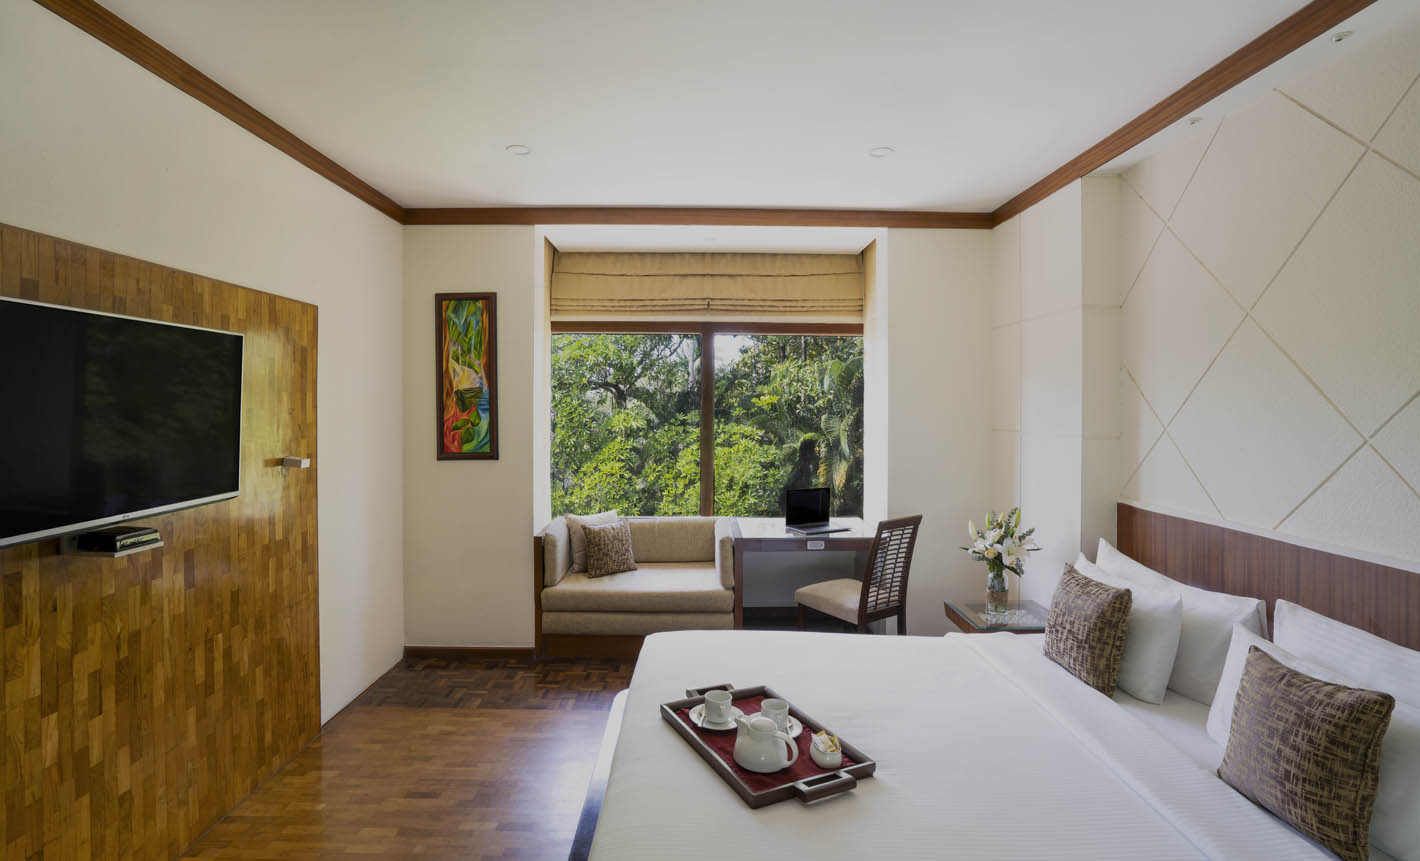 Ramada is a luxury backwater resort in kochi, which offers an uplifting blend of unique hospitality and bespoke wellness. Book our luxury lake view resort Now! luxury lake view rooms,  presidential suite